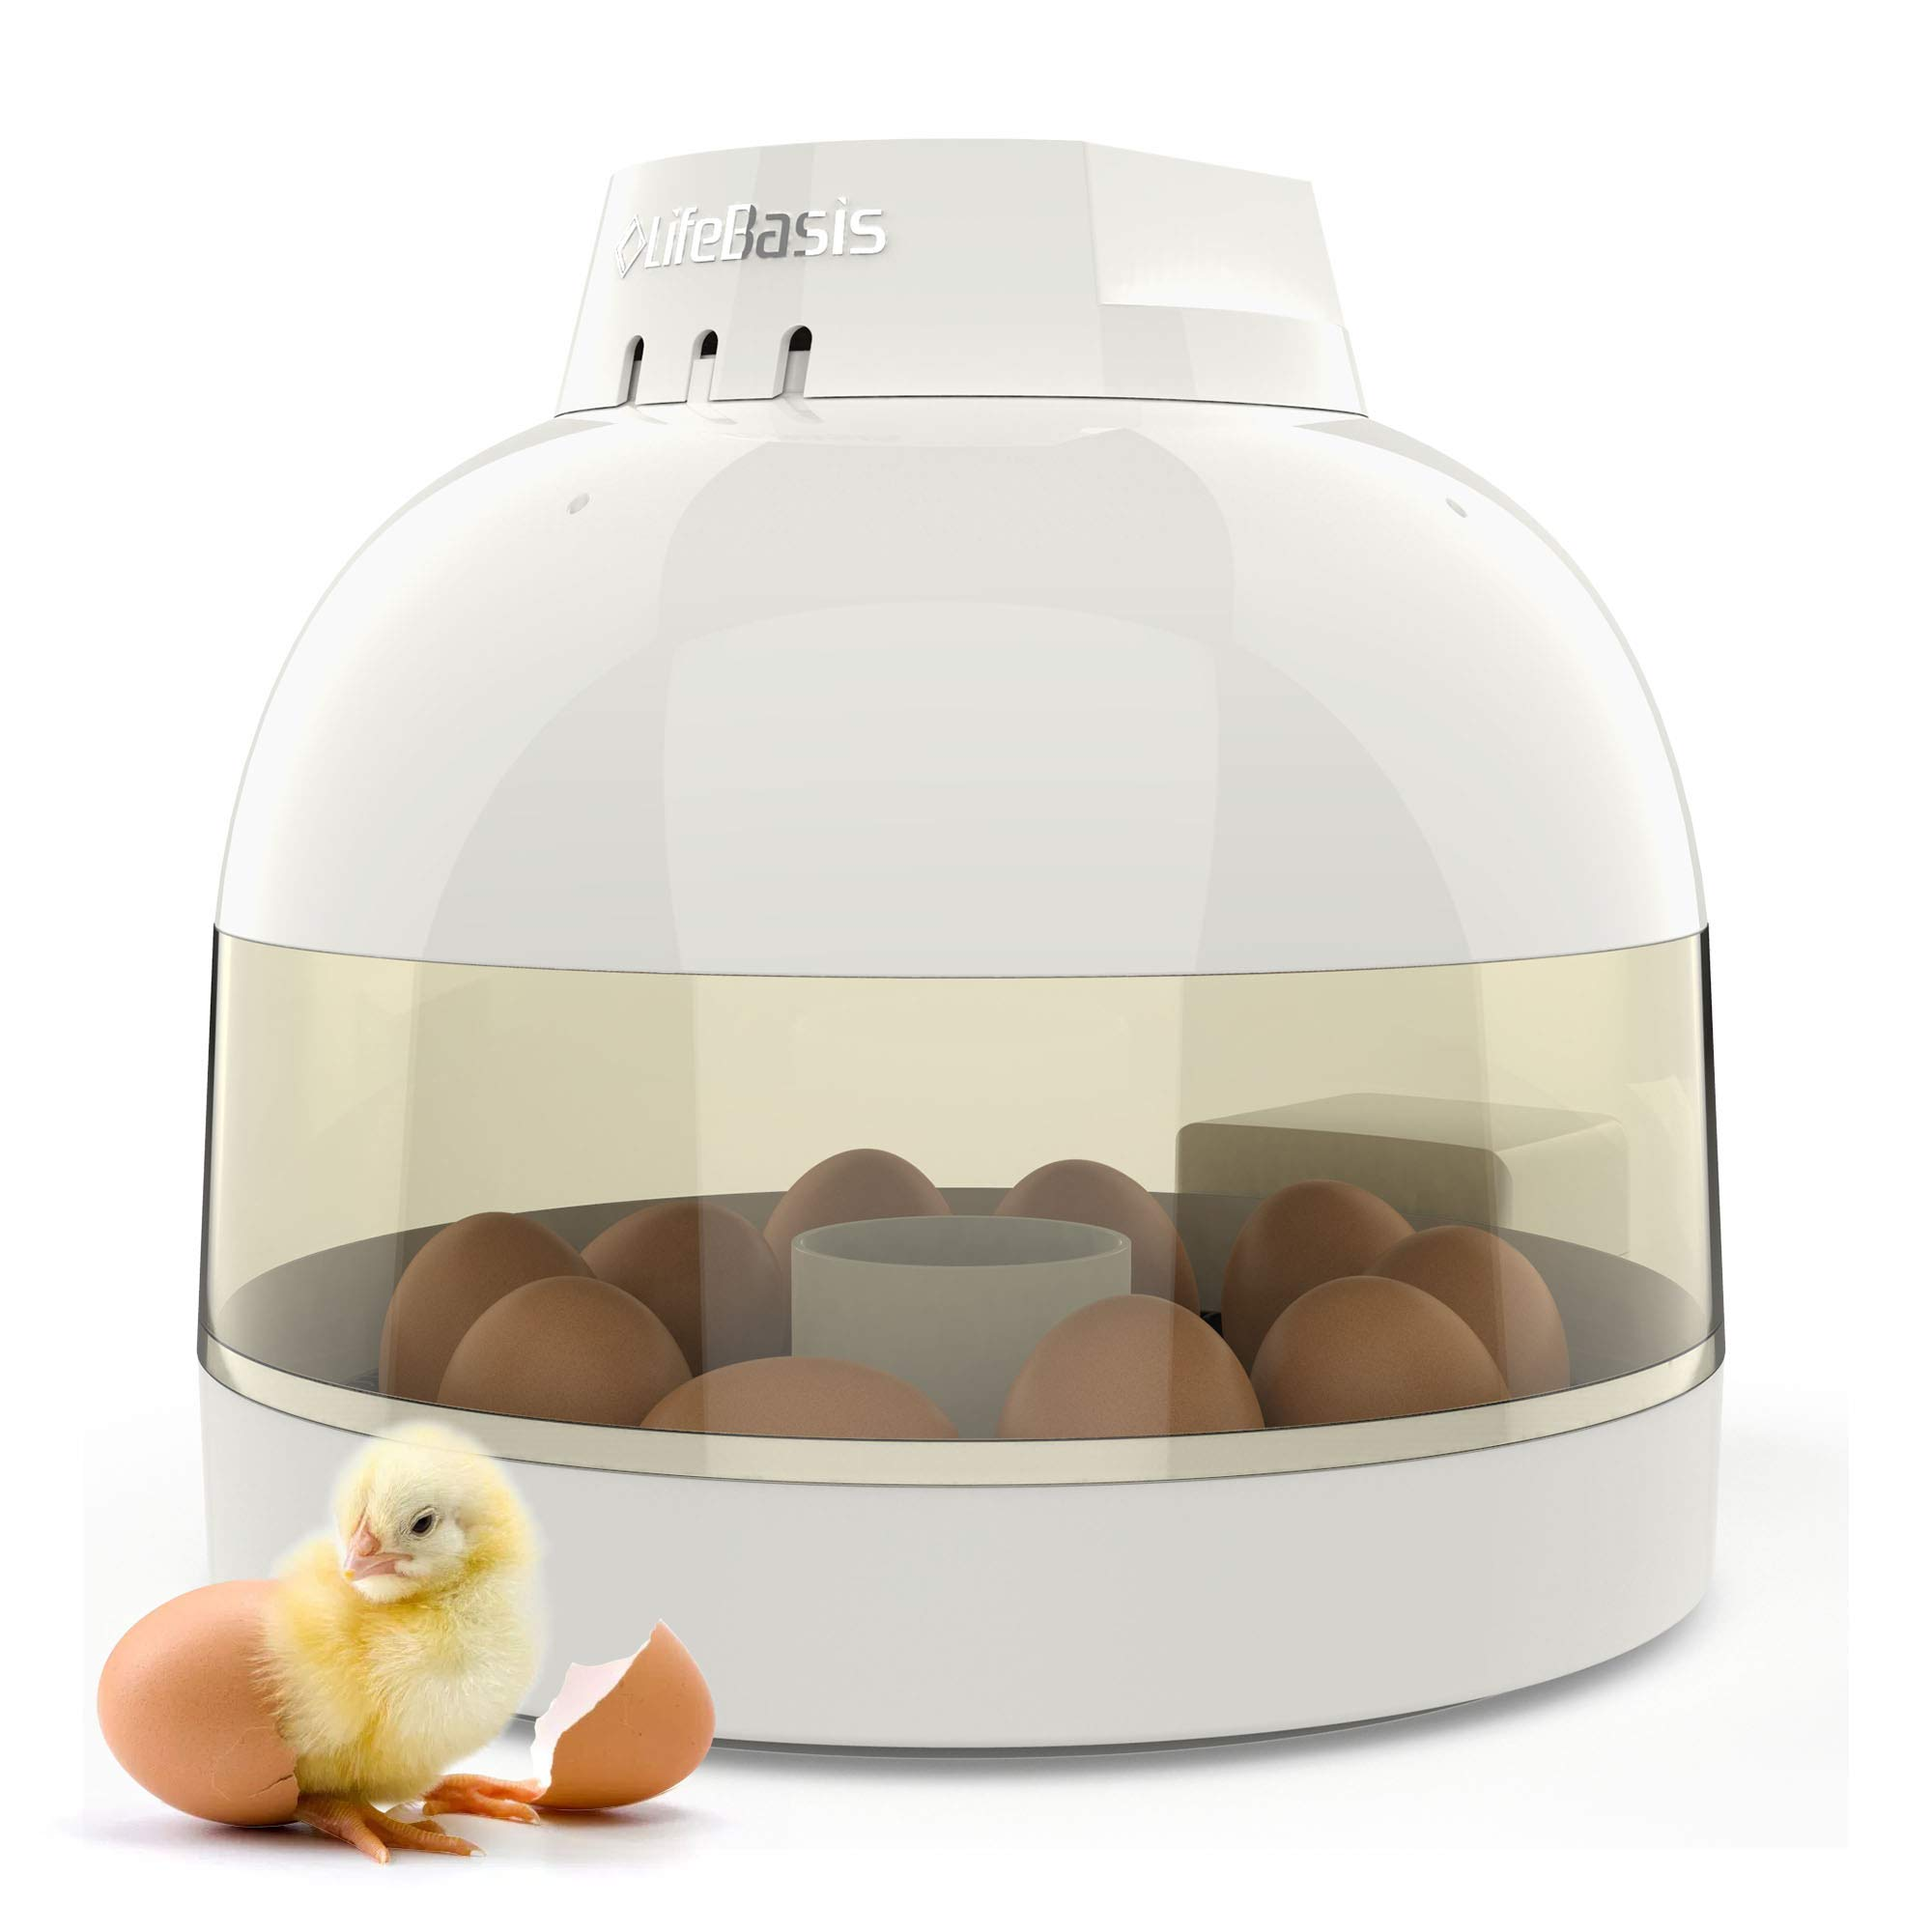 Life Basis Egg Incubator Fully Automatic Egg Turning Auto Temperature Keep Easy to Observe 10 Eggs Small Poultry Hatcher for Chickens Ducks Goose Birds